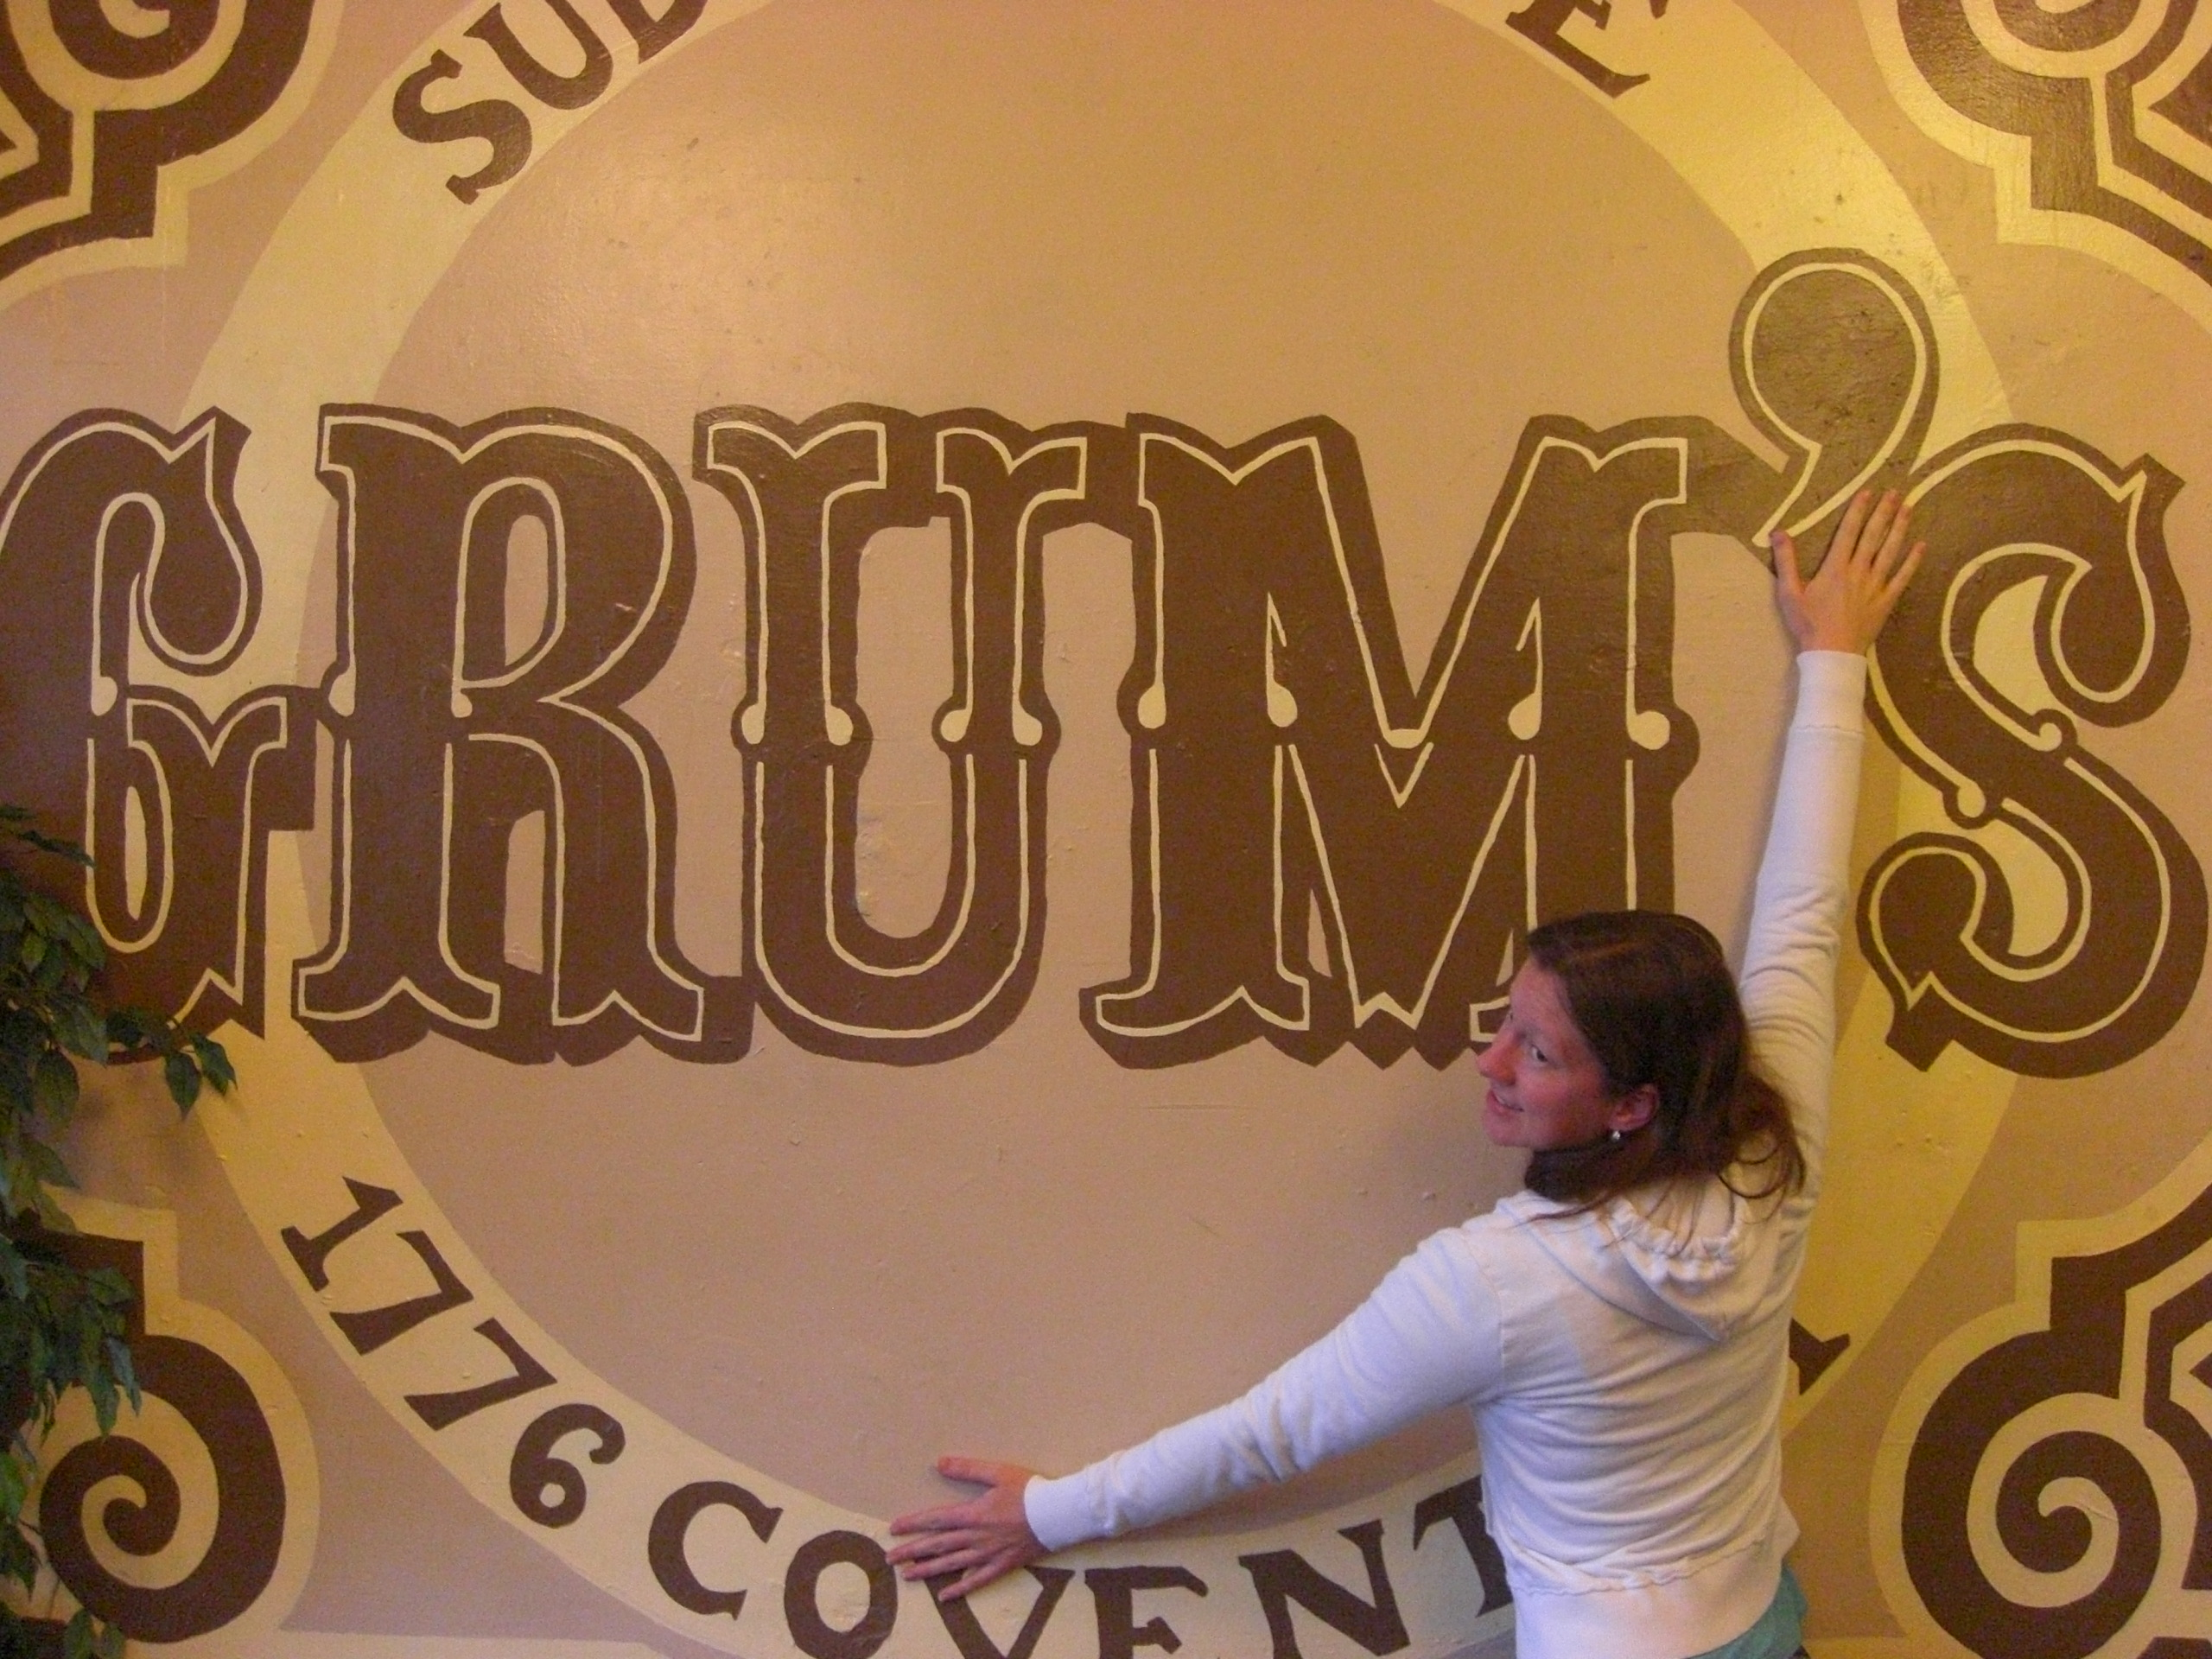 Yes, that's me. And yes, I'm hugging the Grum's wall.